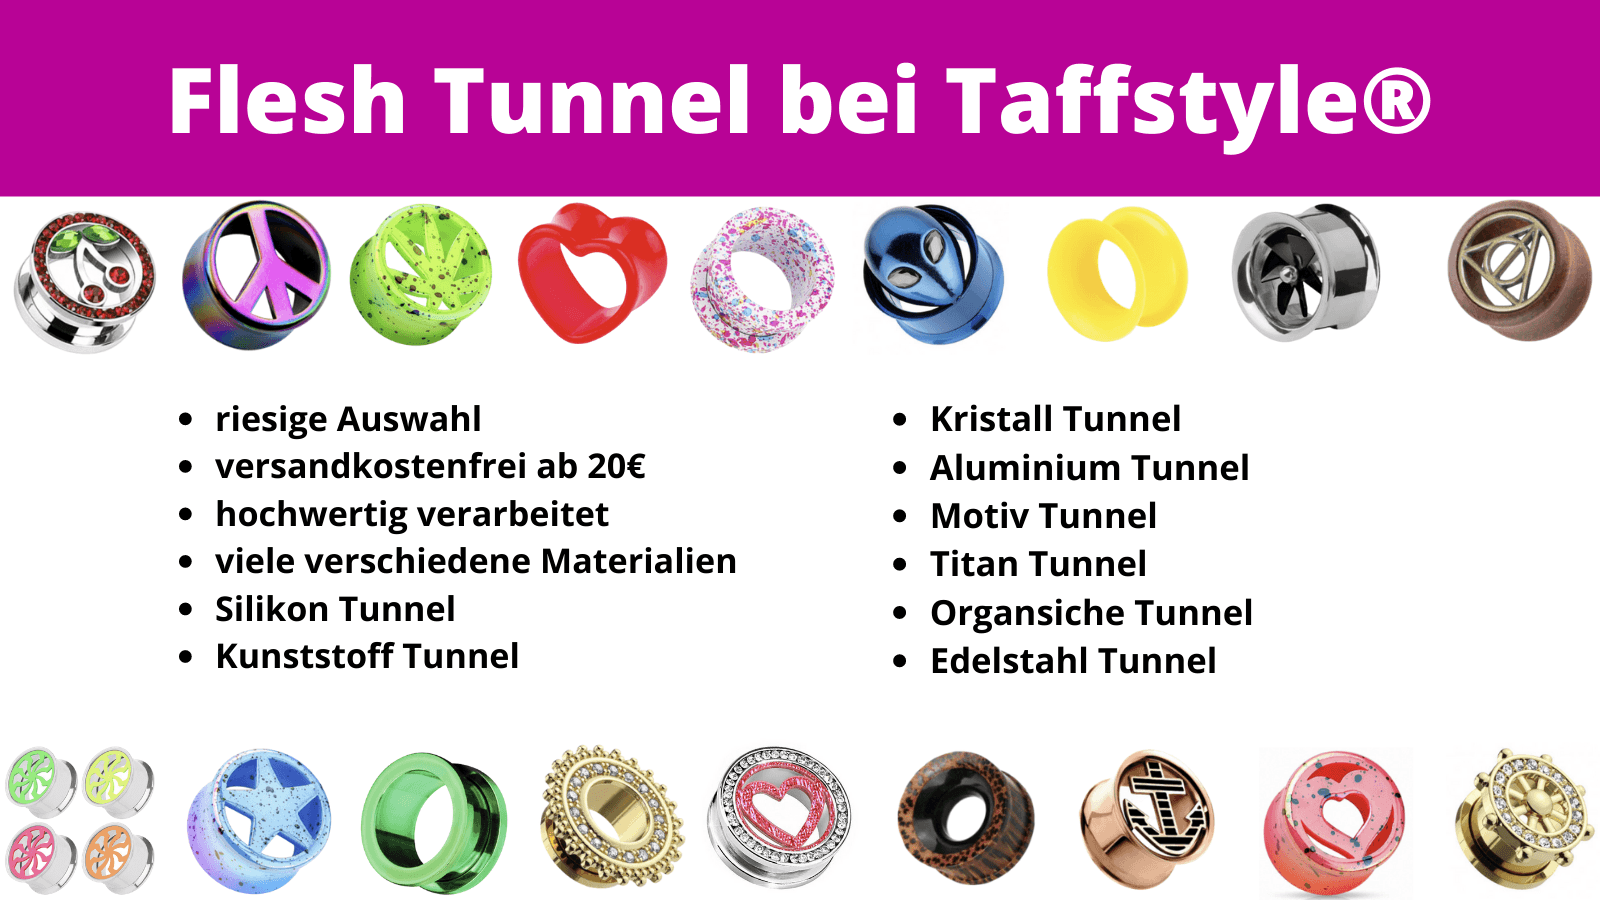 Flesh Tunnel kaufen